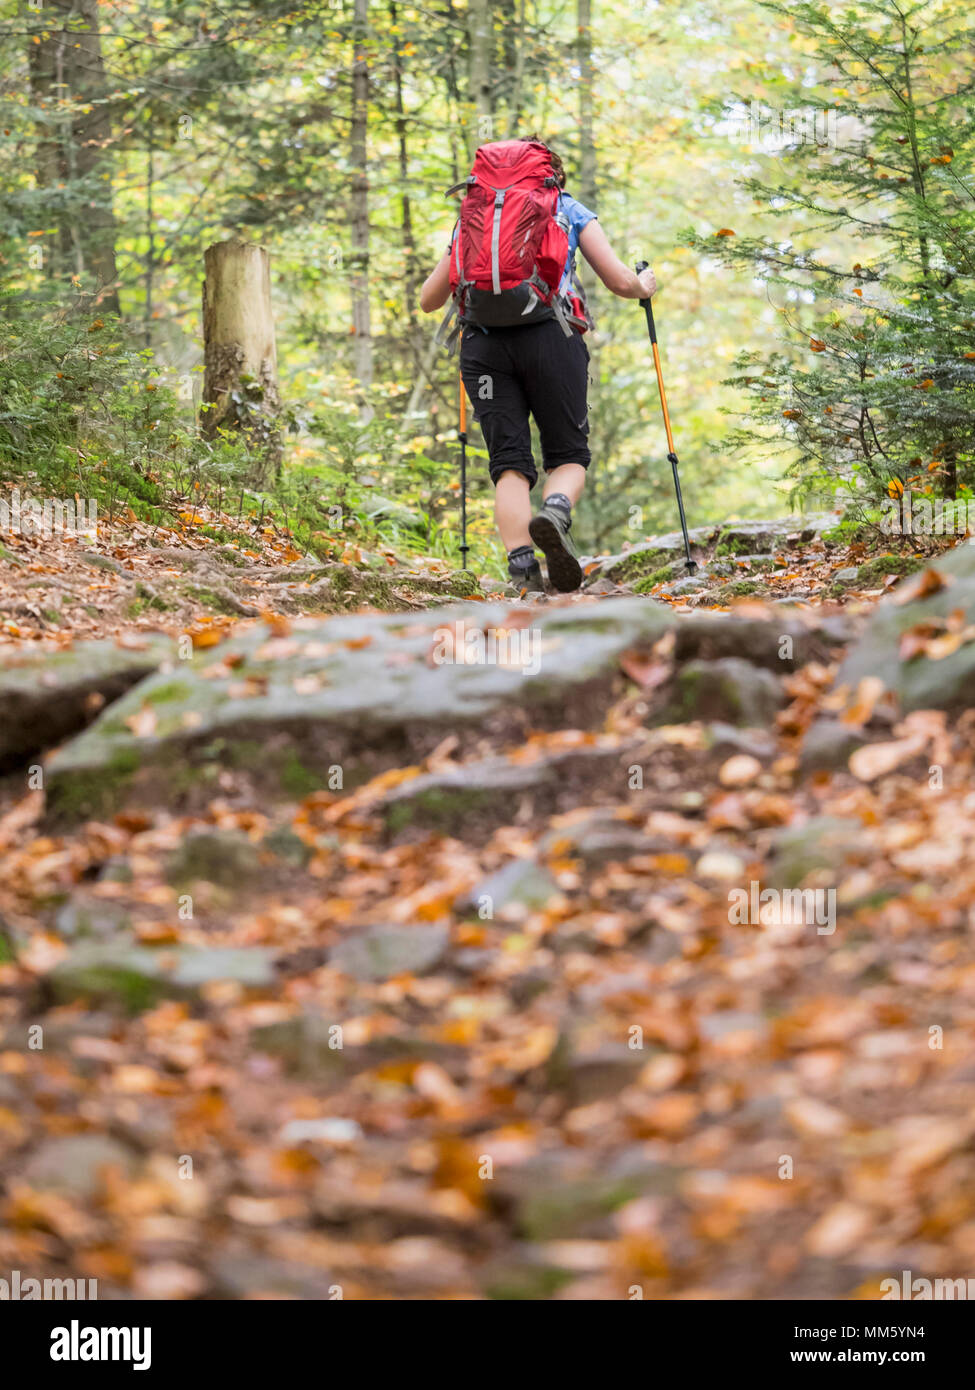 Woman on hiking tour in the Northern Black Forest, Bad Wildbad, Baden-Württemberg, Germany - Stock Image